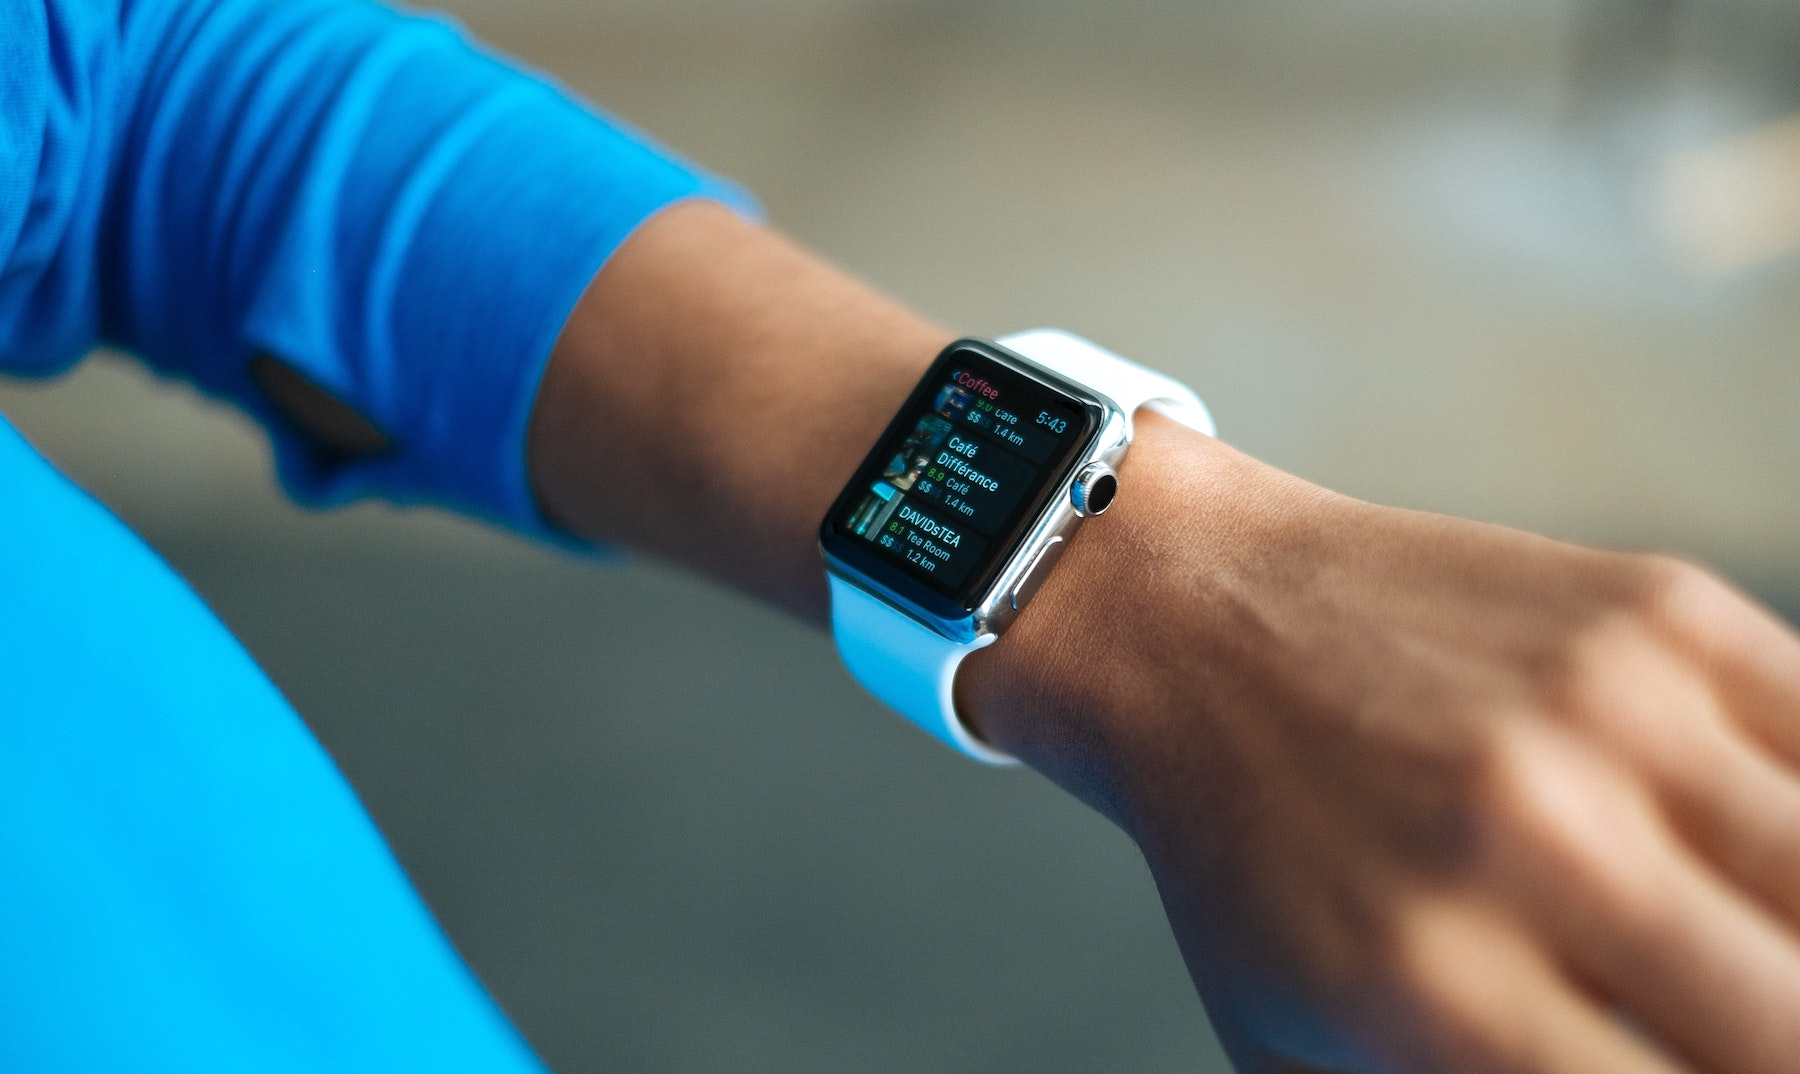 Sensors and antennas are critical components of wearable technologies, like the smart watch pictured here.